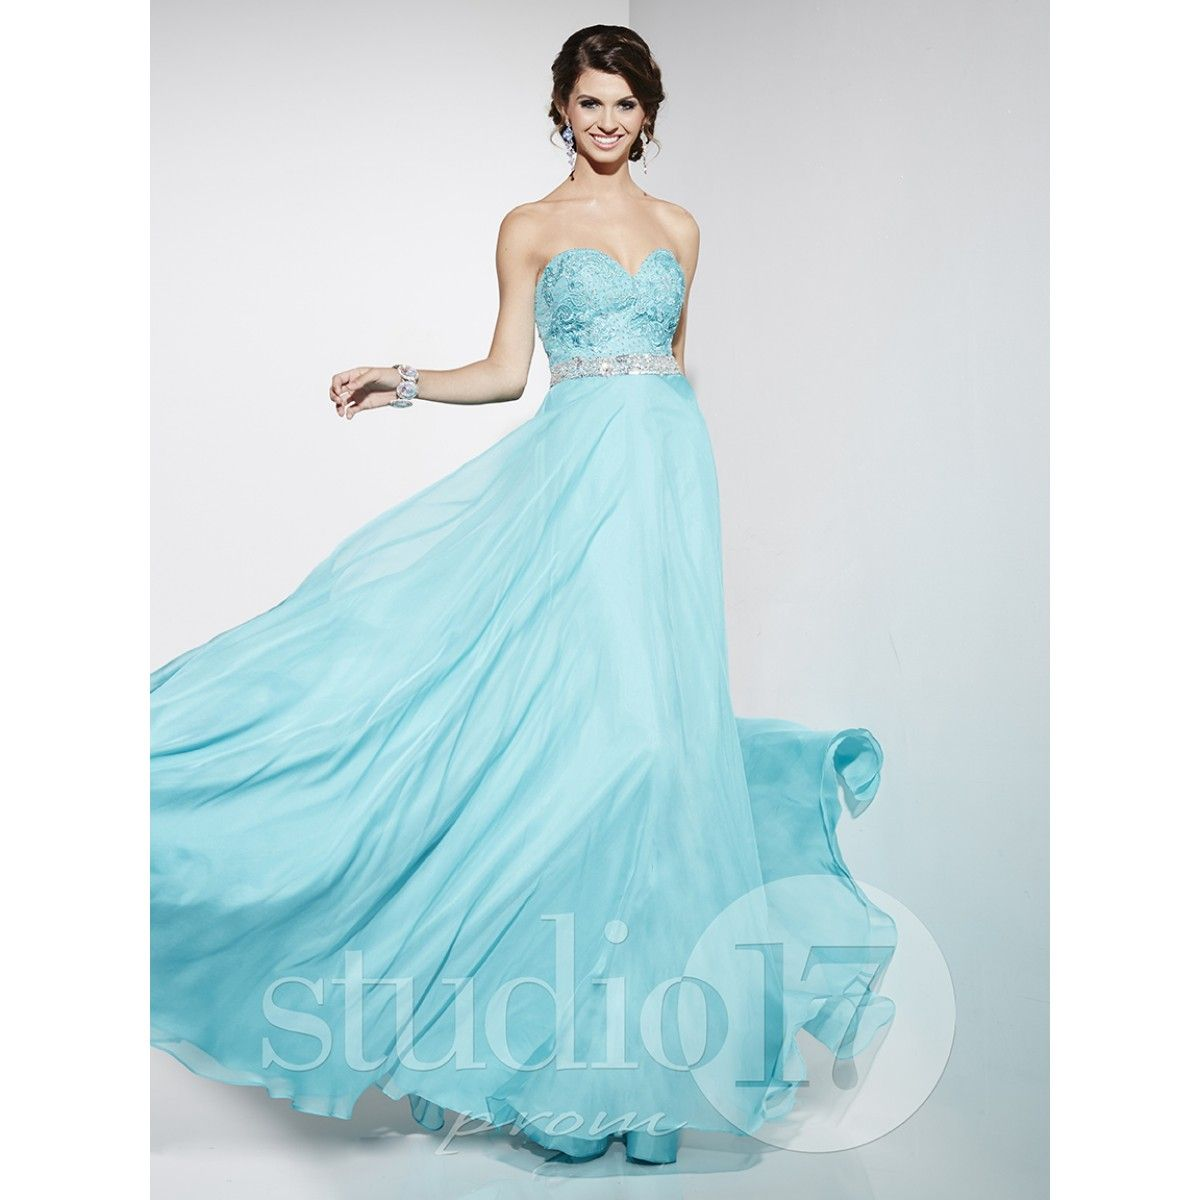 Studio 17 Style 12549   Prom   Pinterest   Prom and Pageants